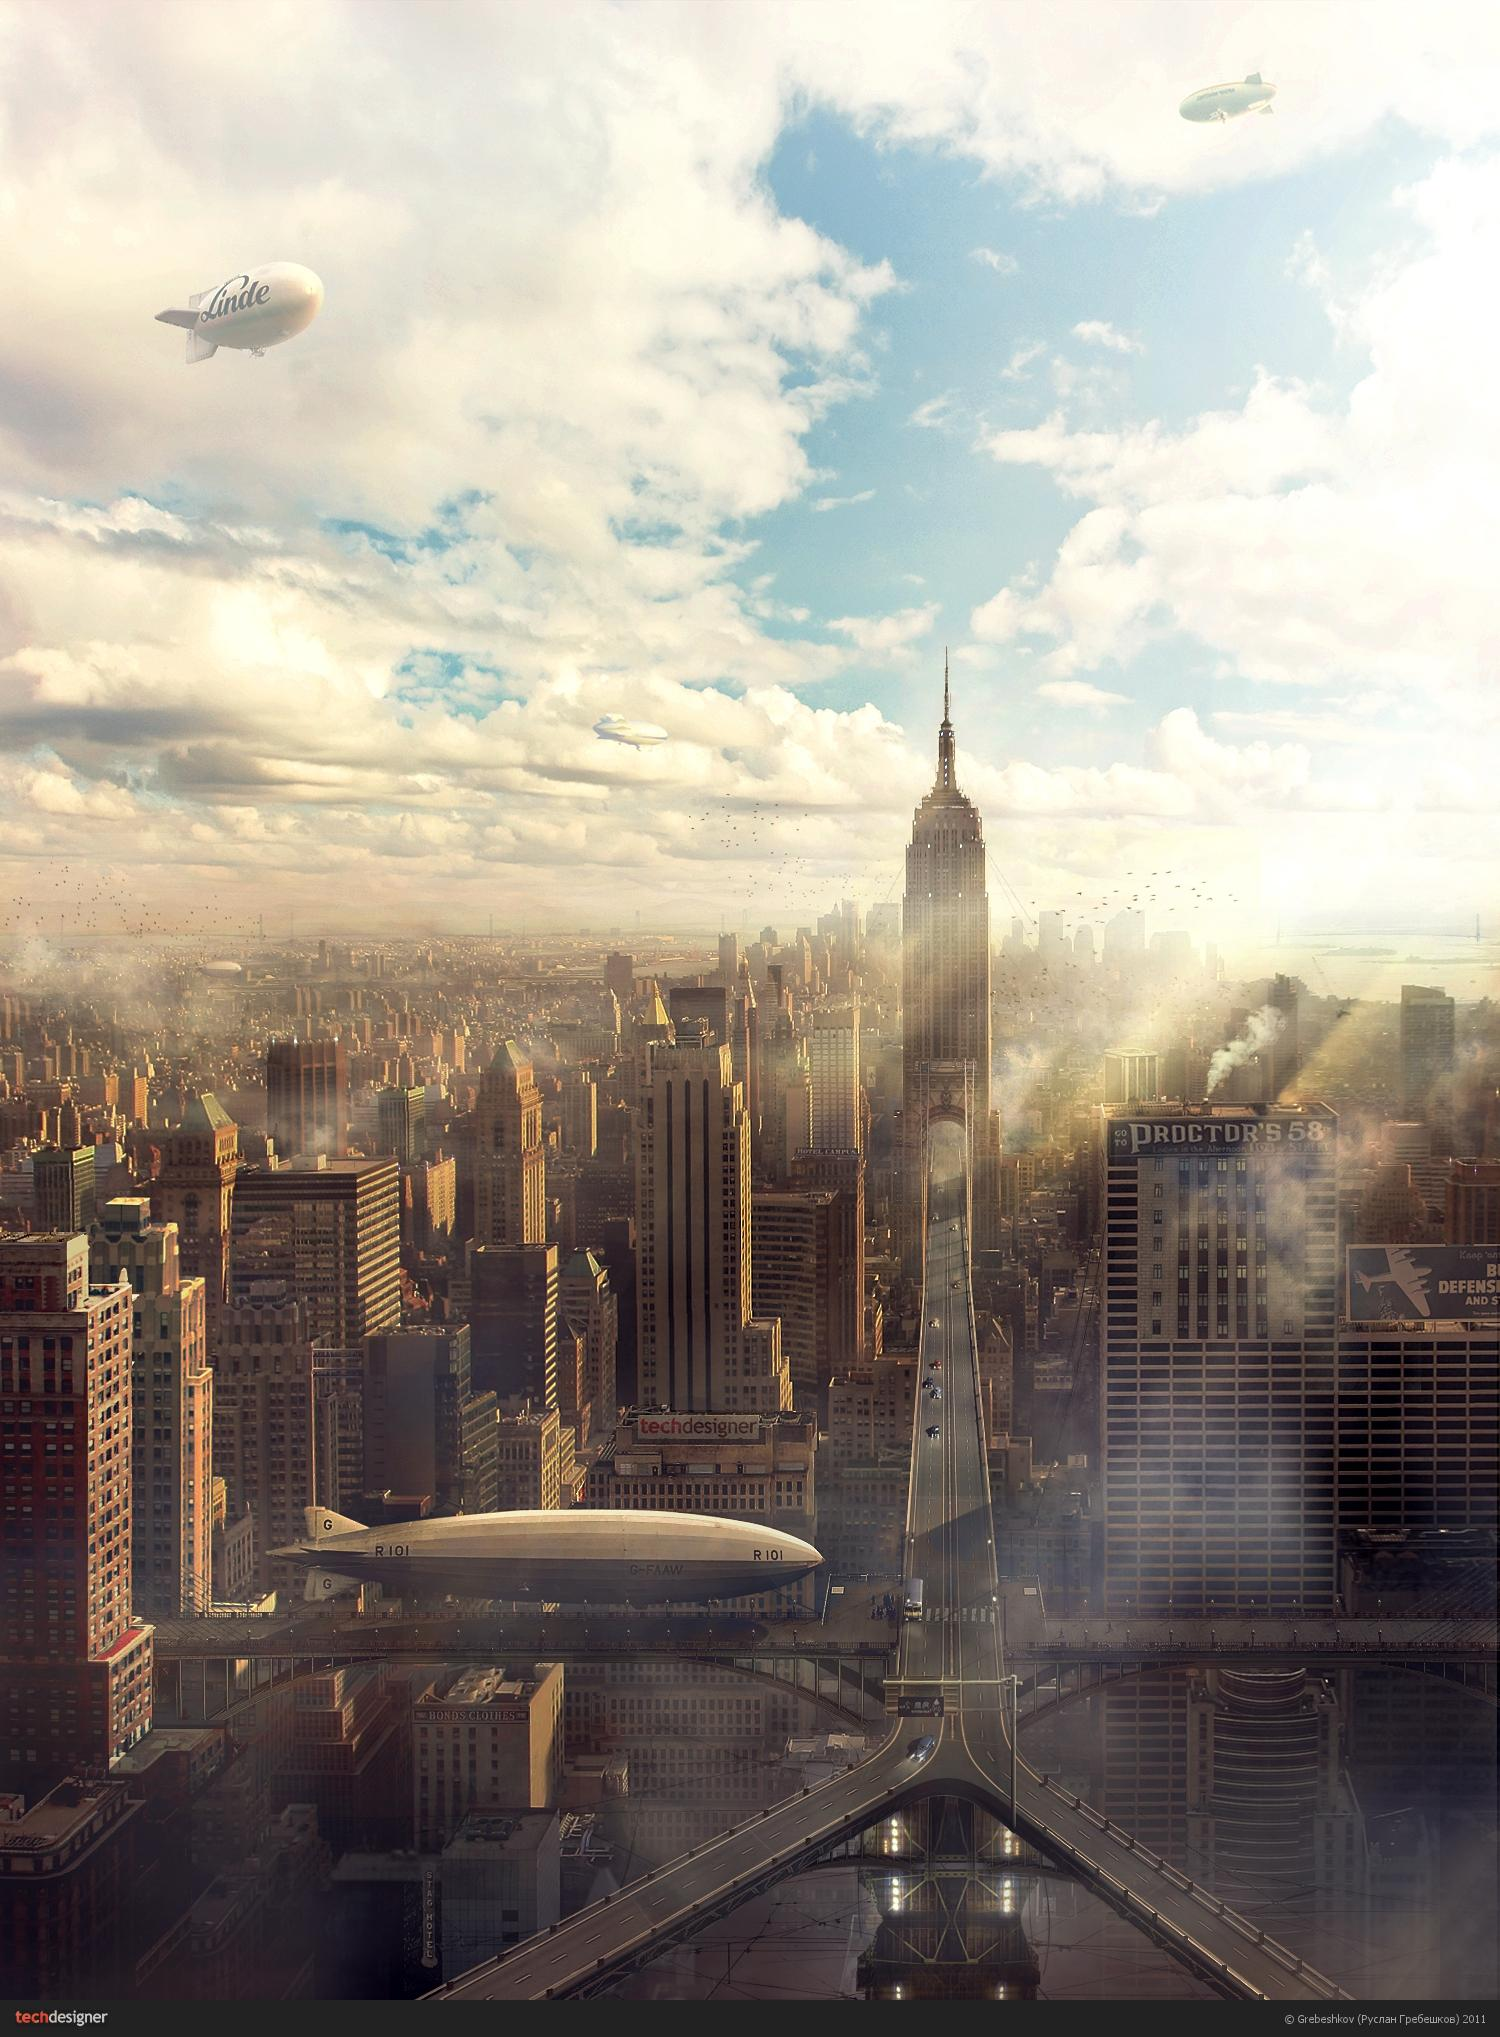 City near future. (Tehdizayner.ru Blogs - Blog about design: Grebeshkov)